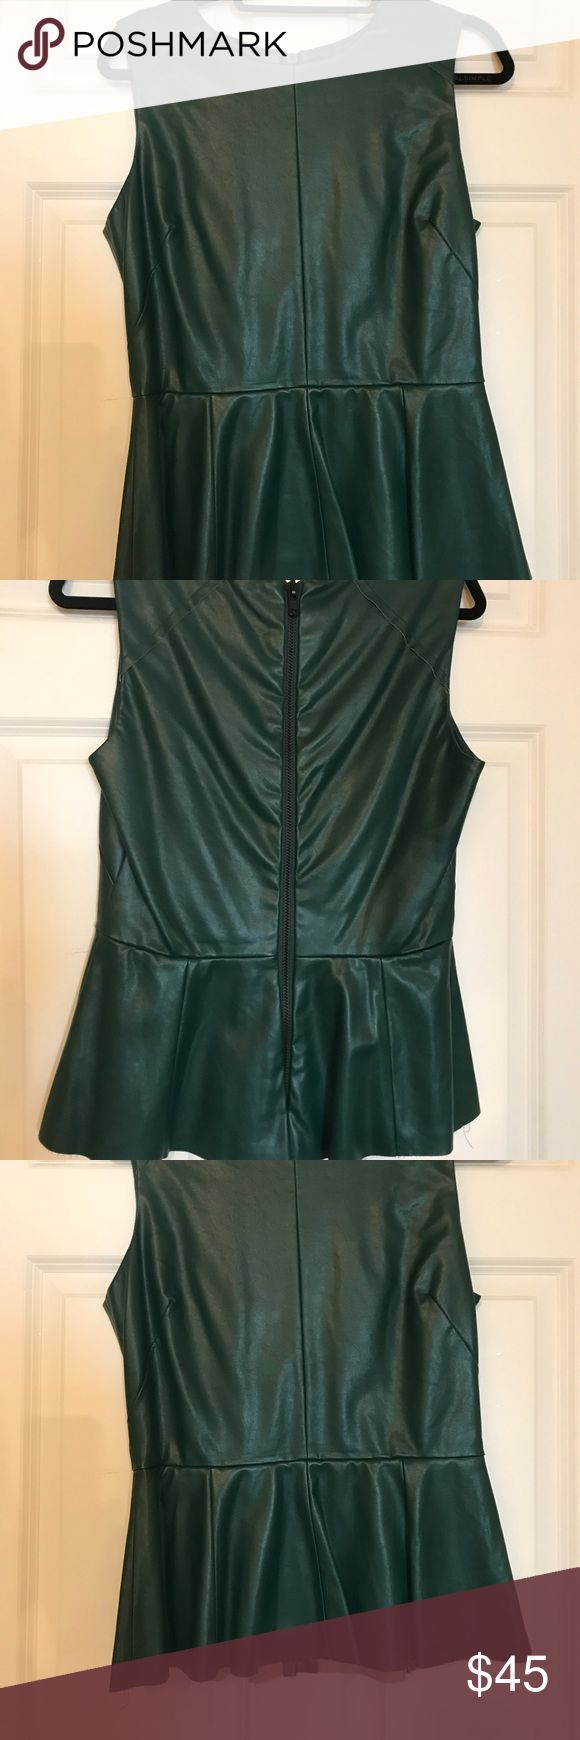 Bottle green leather peplum Top Walter Baker butter leather peplum Top in sumptuous bottle green. Size medium. Lovely layering piece. Zipper back. Gently worn. W118 by Walter Baker Tops